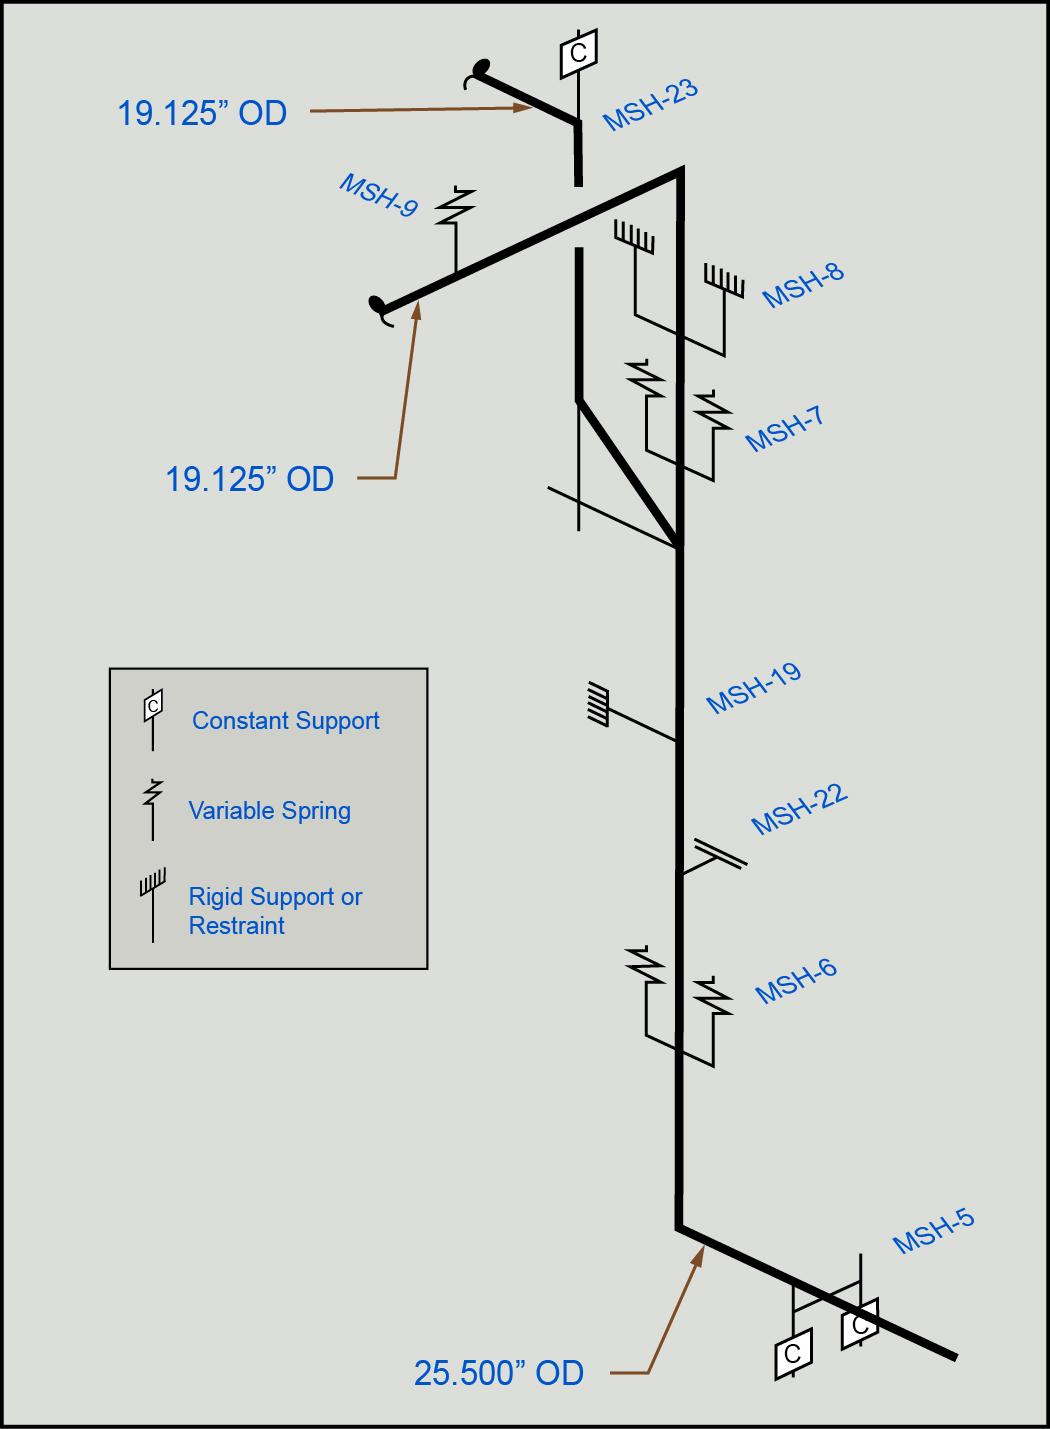 Figure 1. Riser piping support isometric